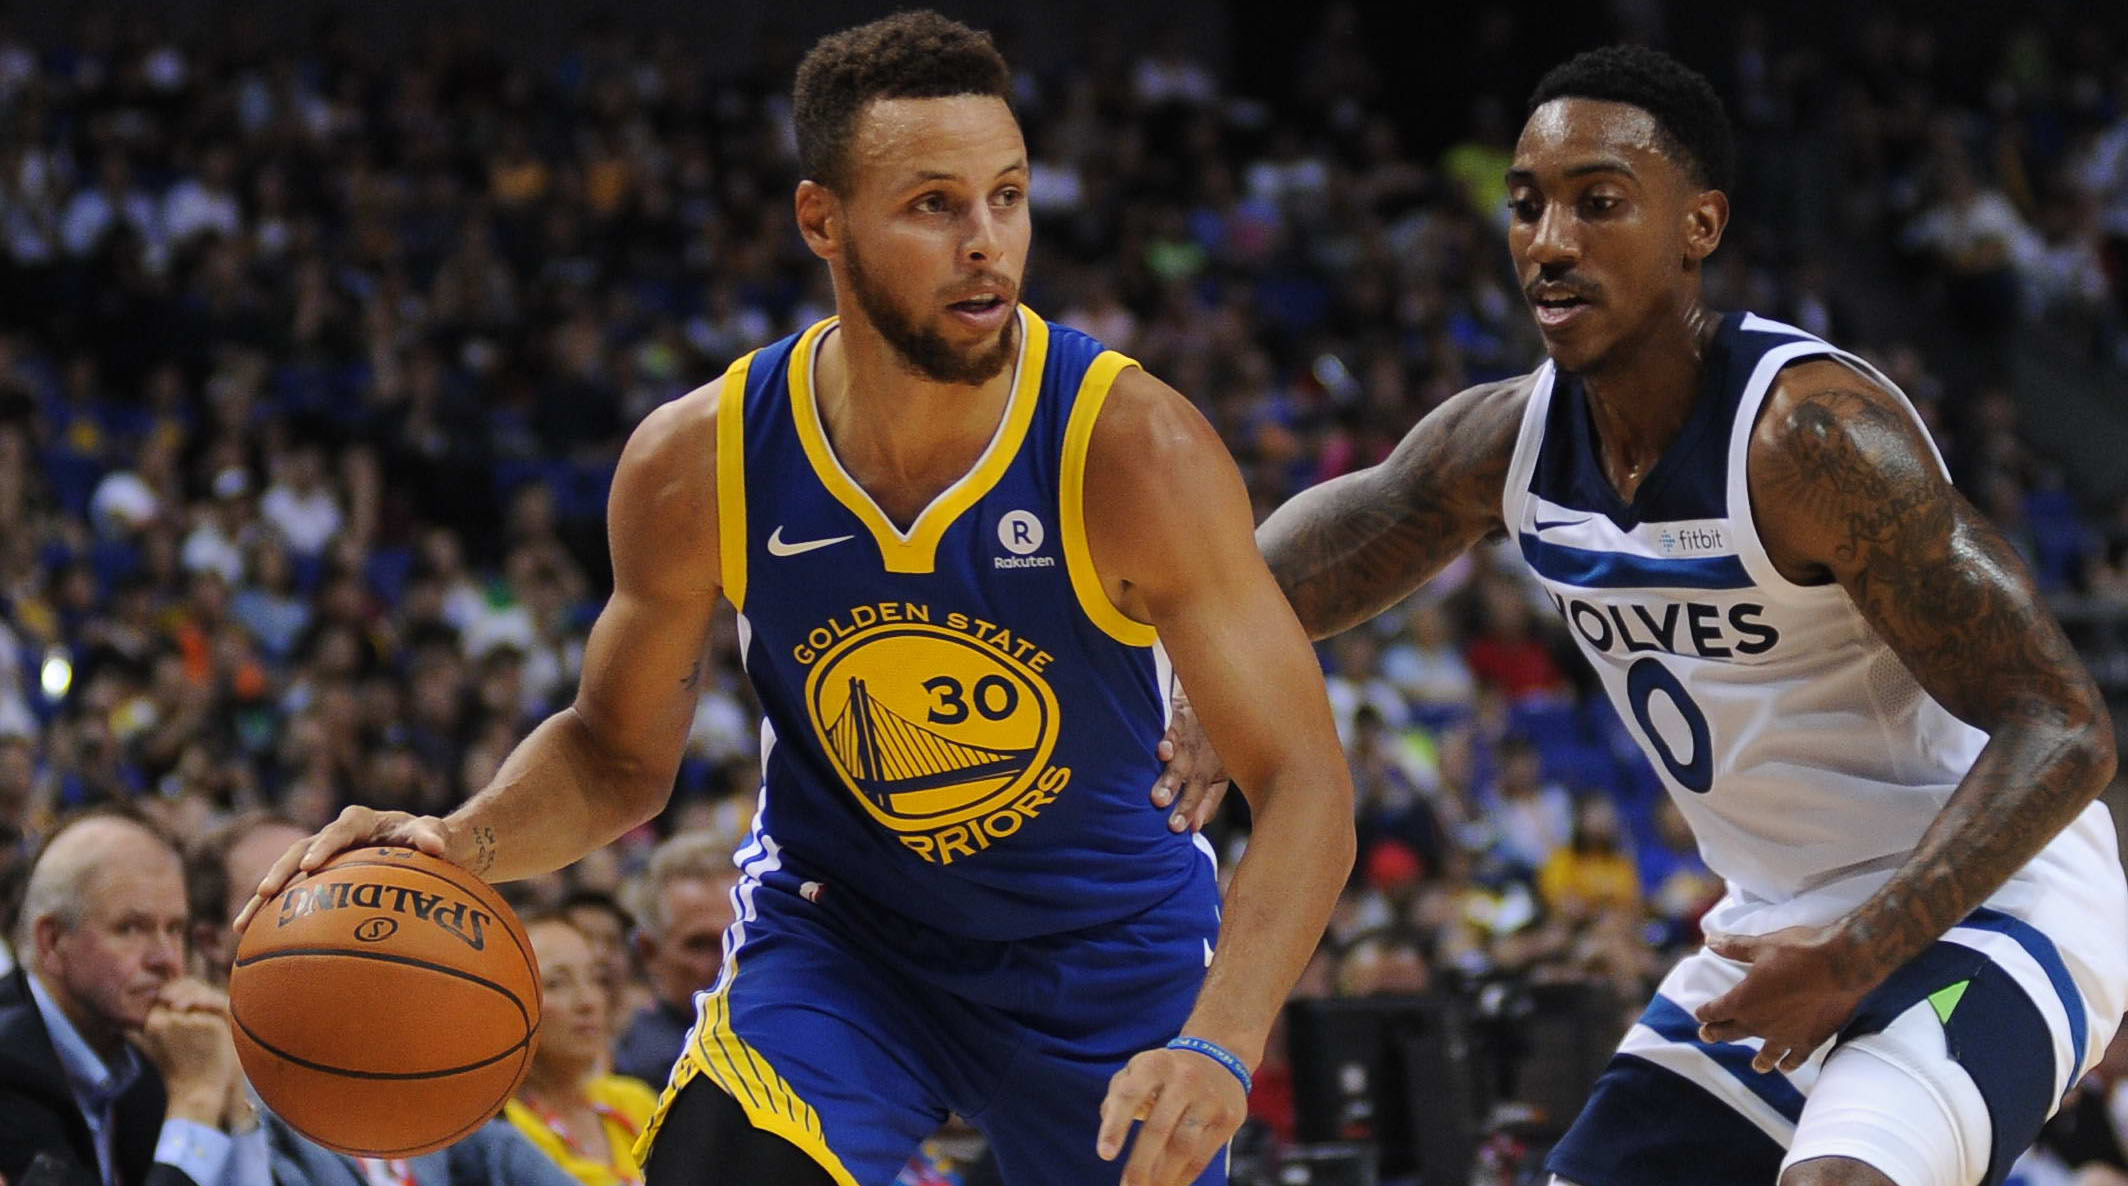 Stephen-curry-on-why-timberwolves-passed-on-him-in-draft